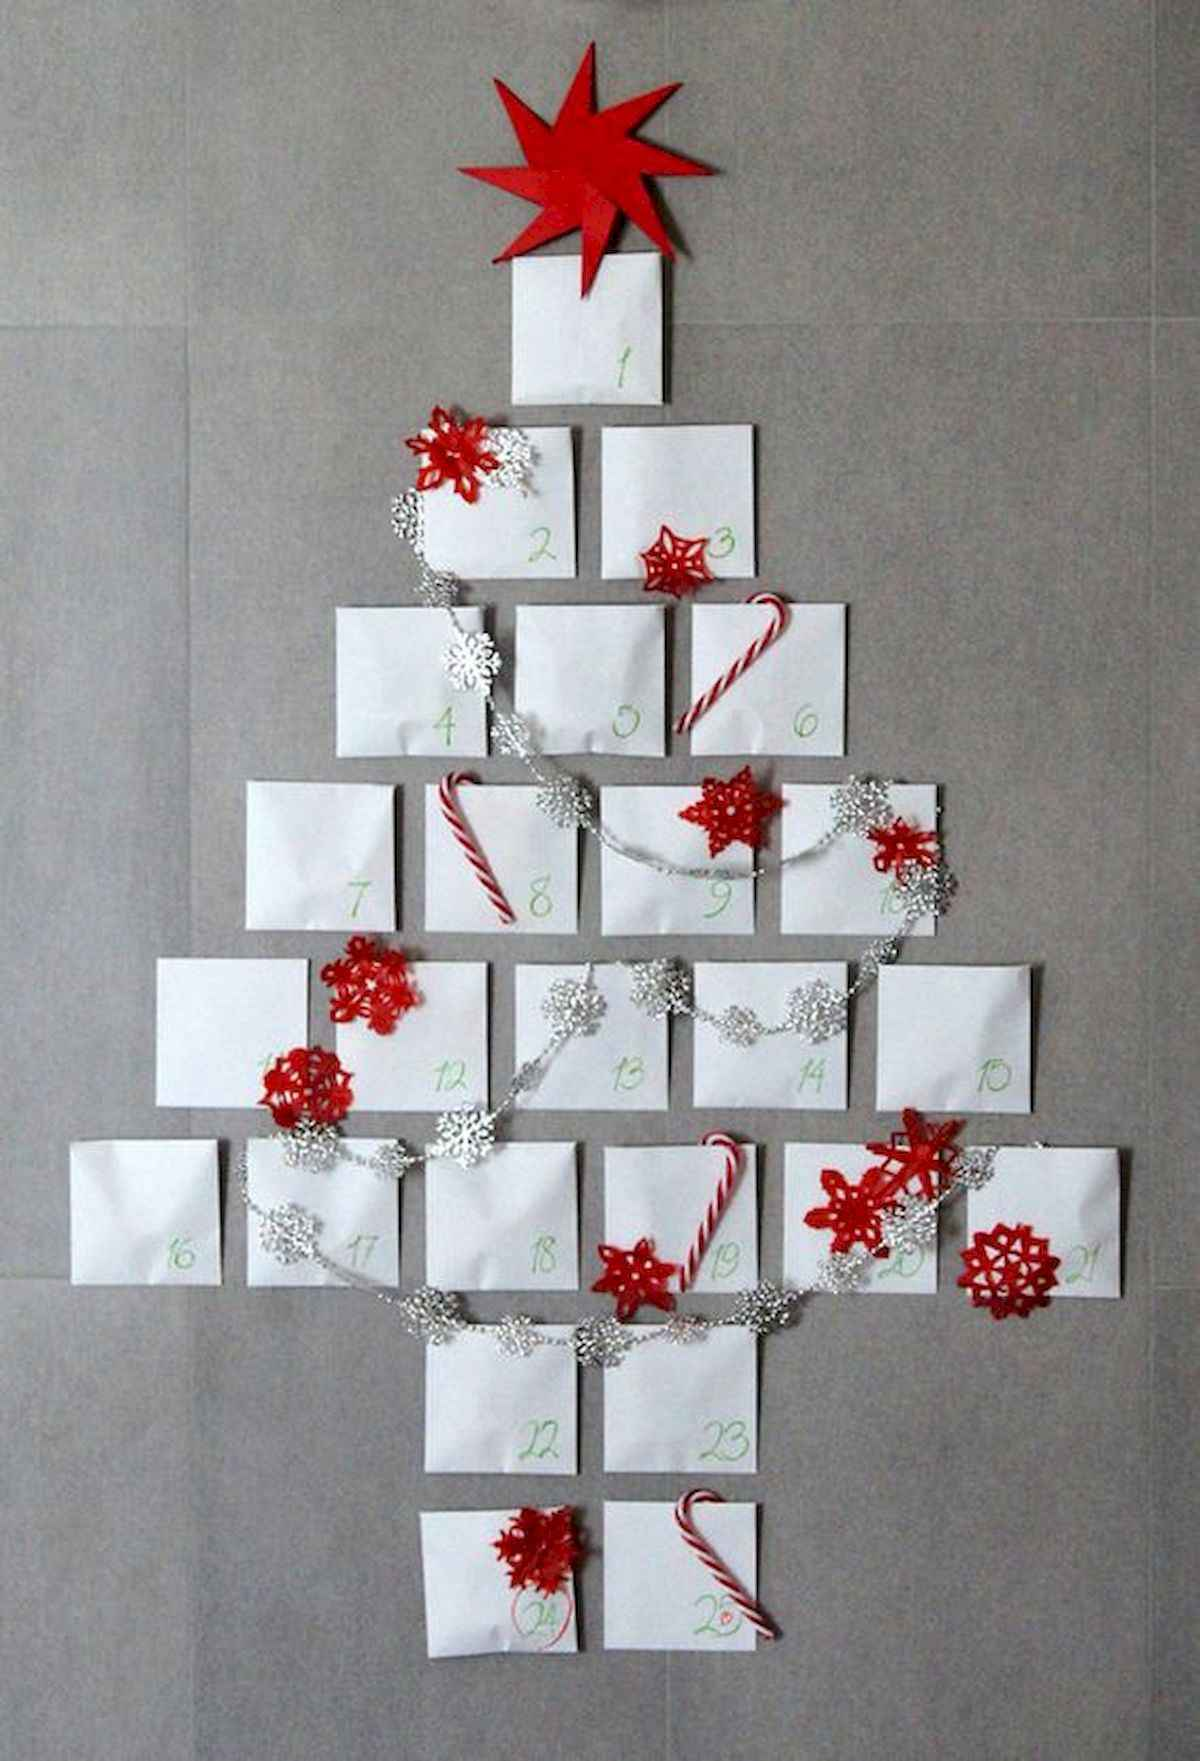 60 awesome wall art christmas ideas decorations (12)